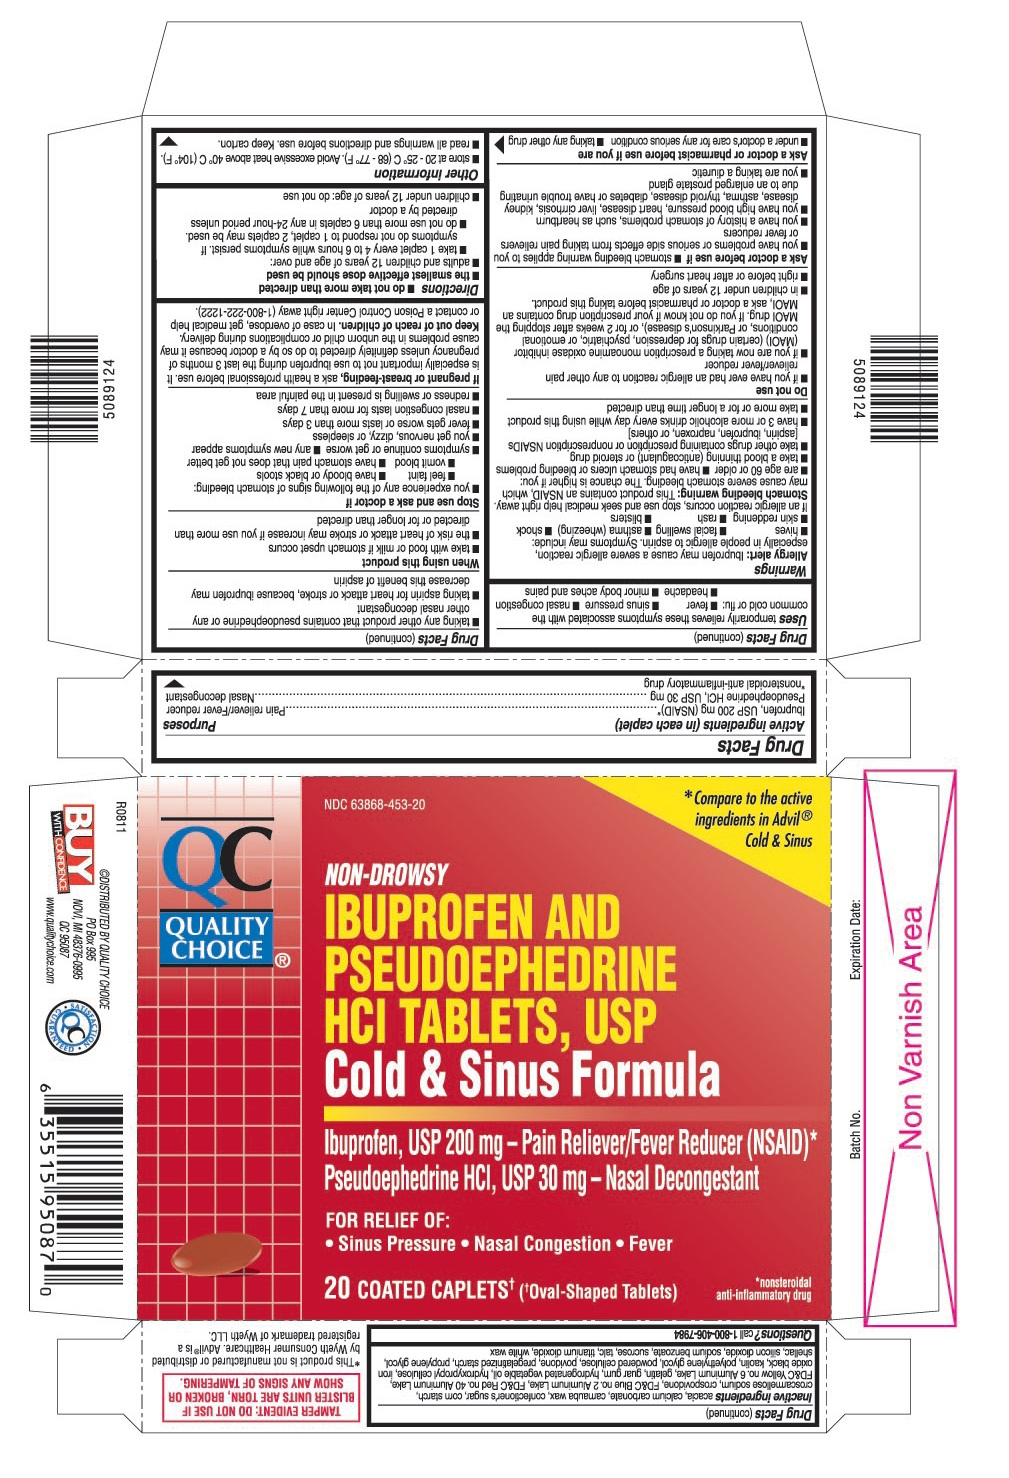 This is the 20 count blister carton label for Quality Choice Ibuprofen and Pseudoephedrine HCl Tablets, USP.